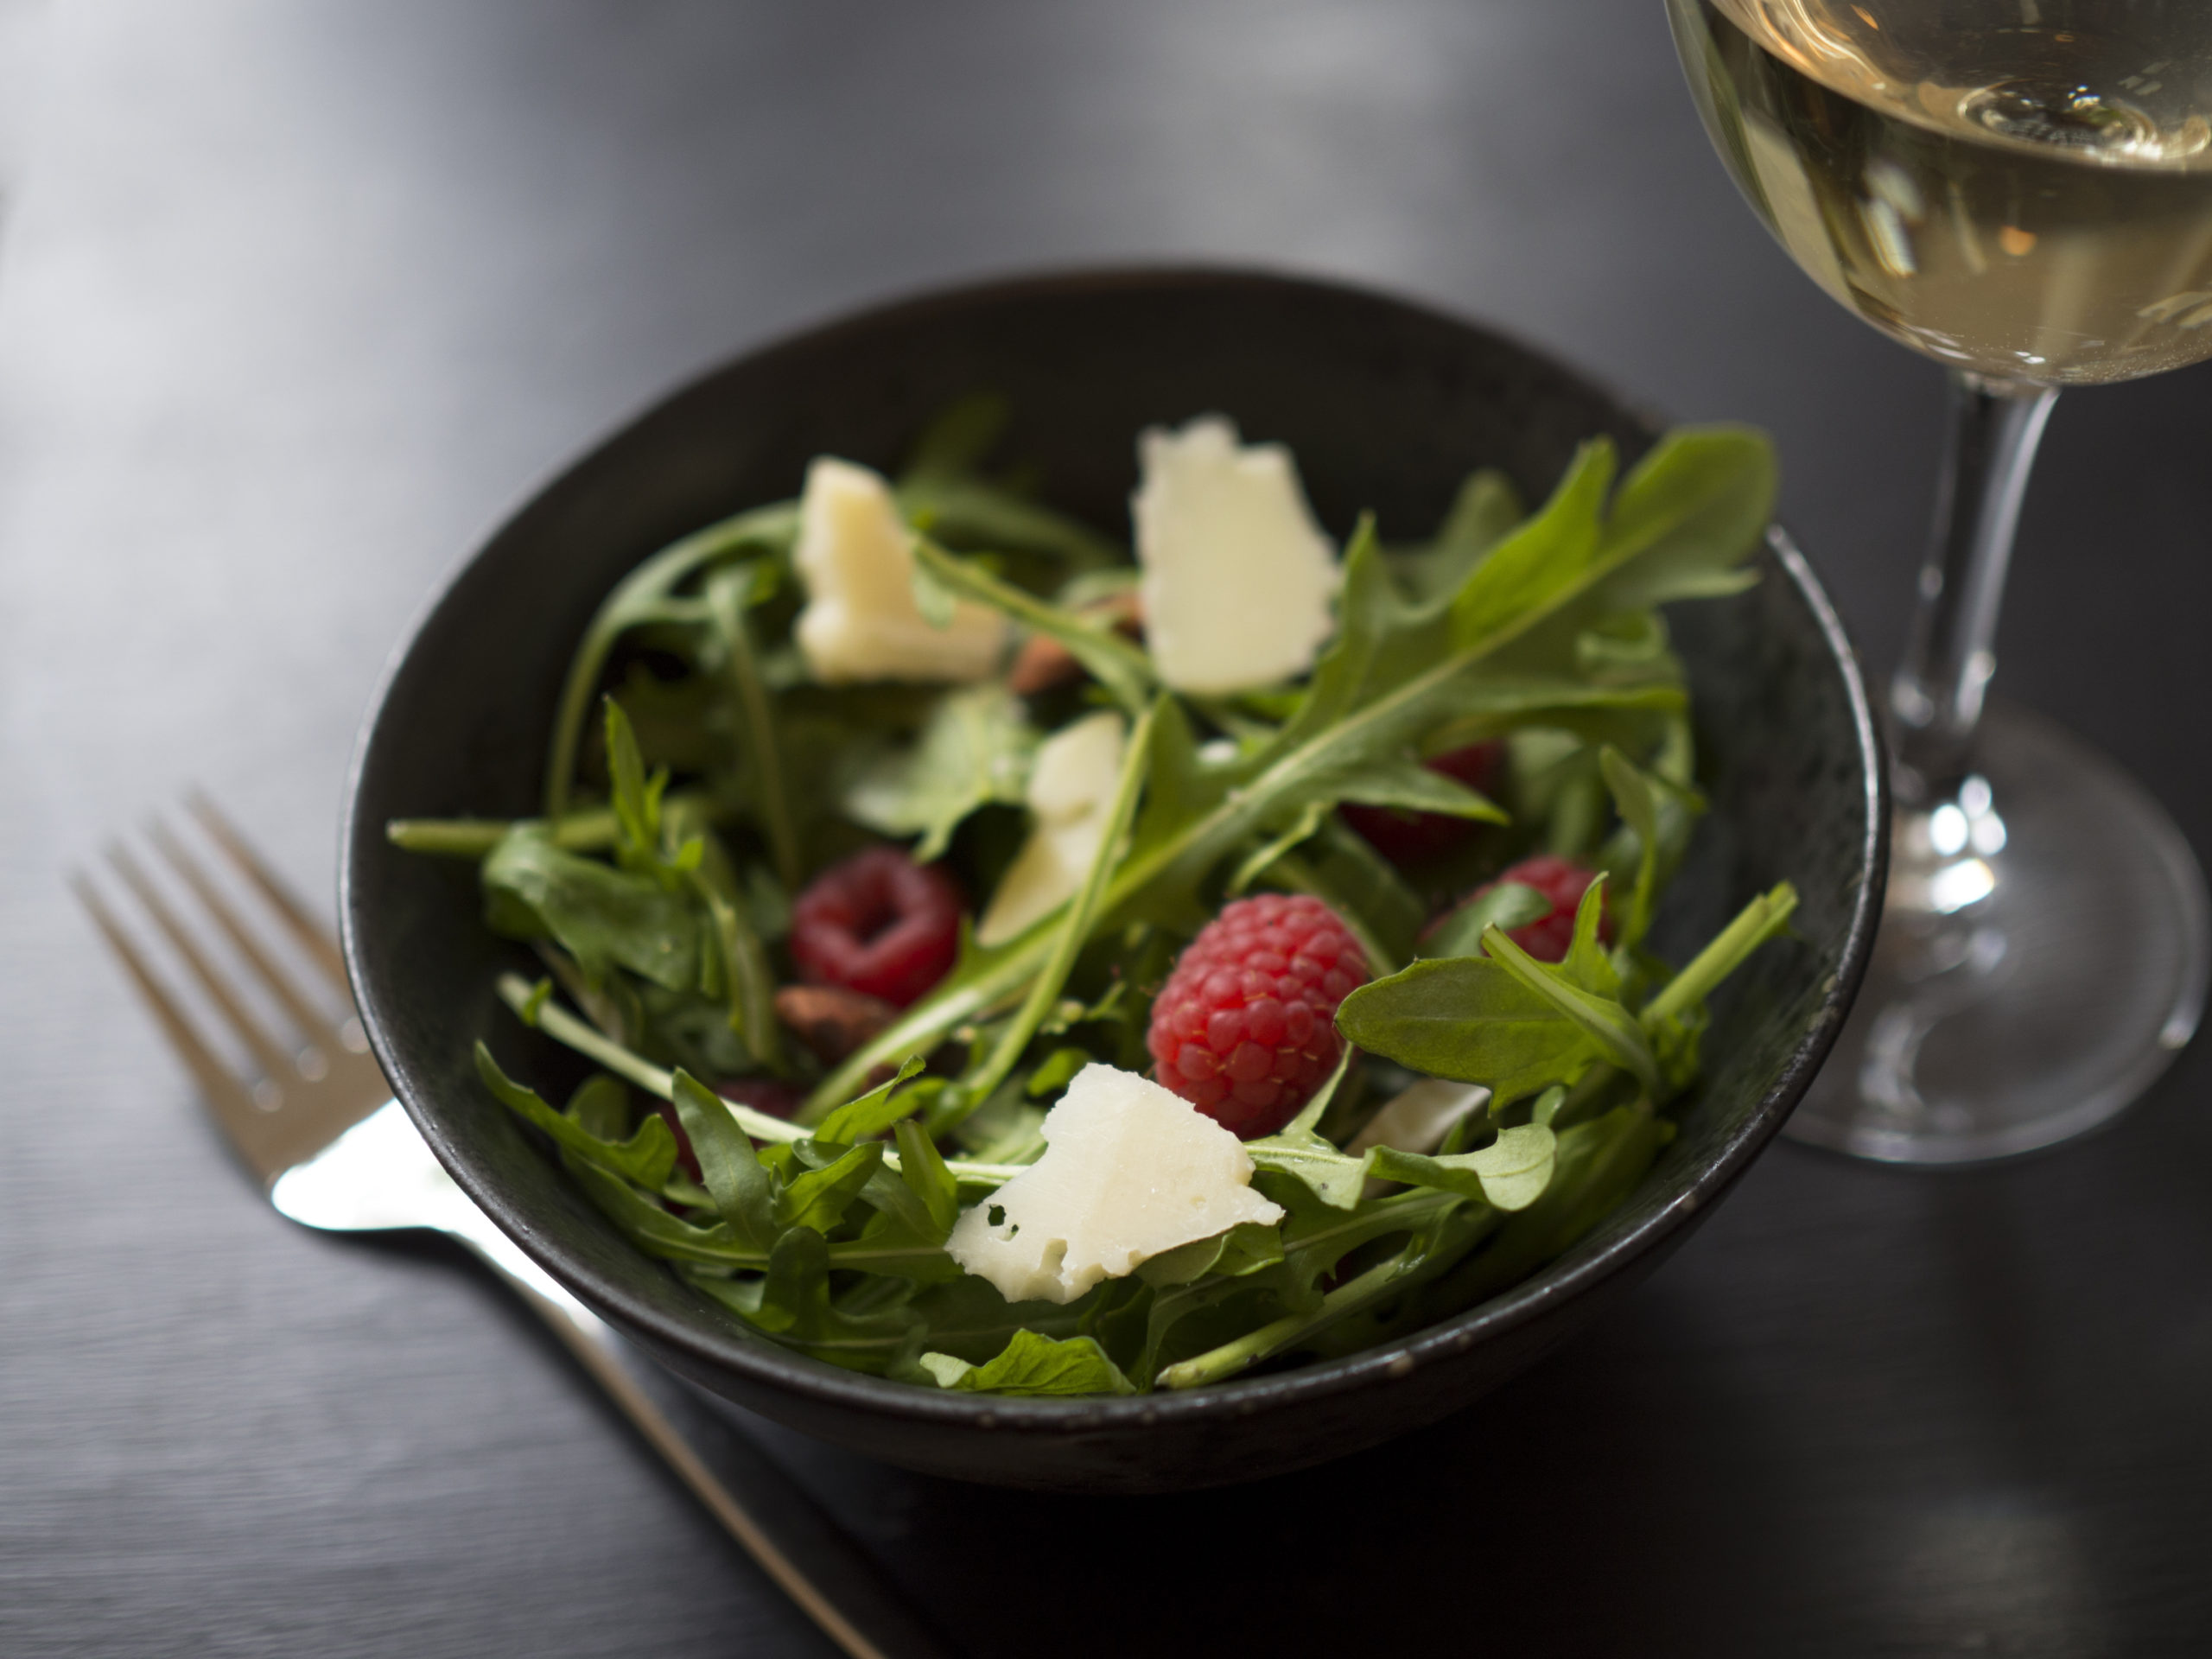 A rocket salad topped with parmesan, almonds, and raspberries. The infused Raspberry Chocolate Salad by Nove is a must-try.